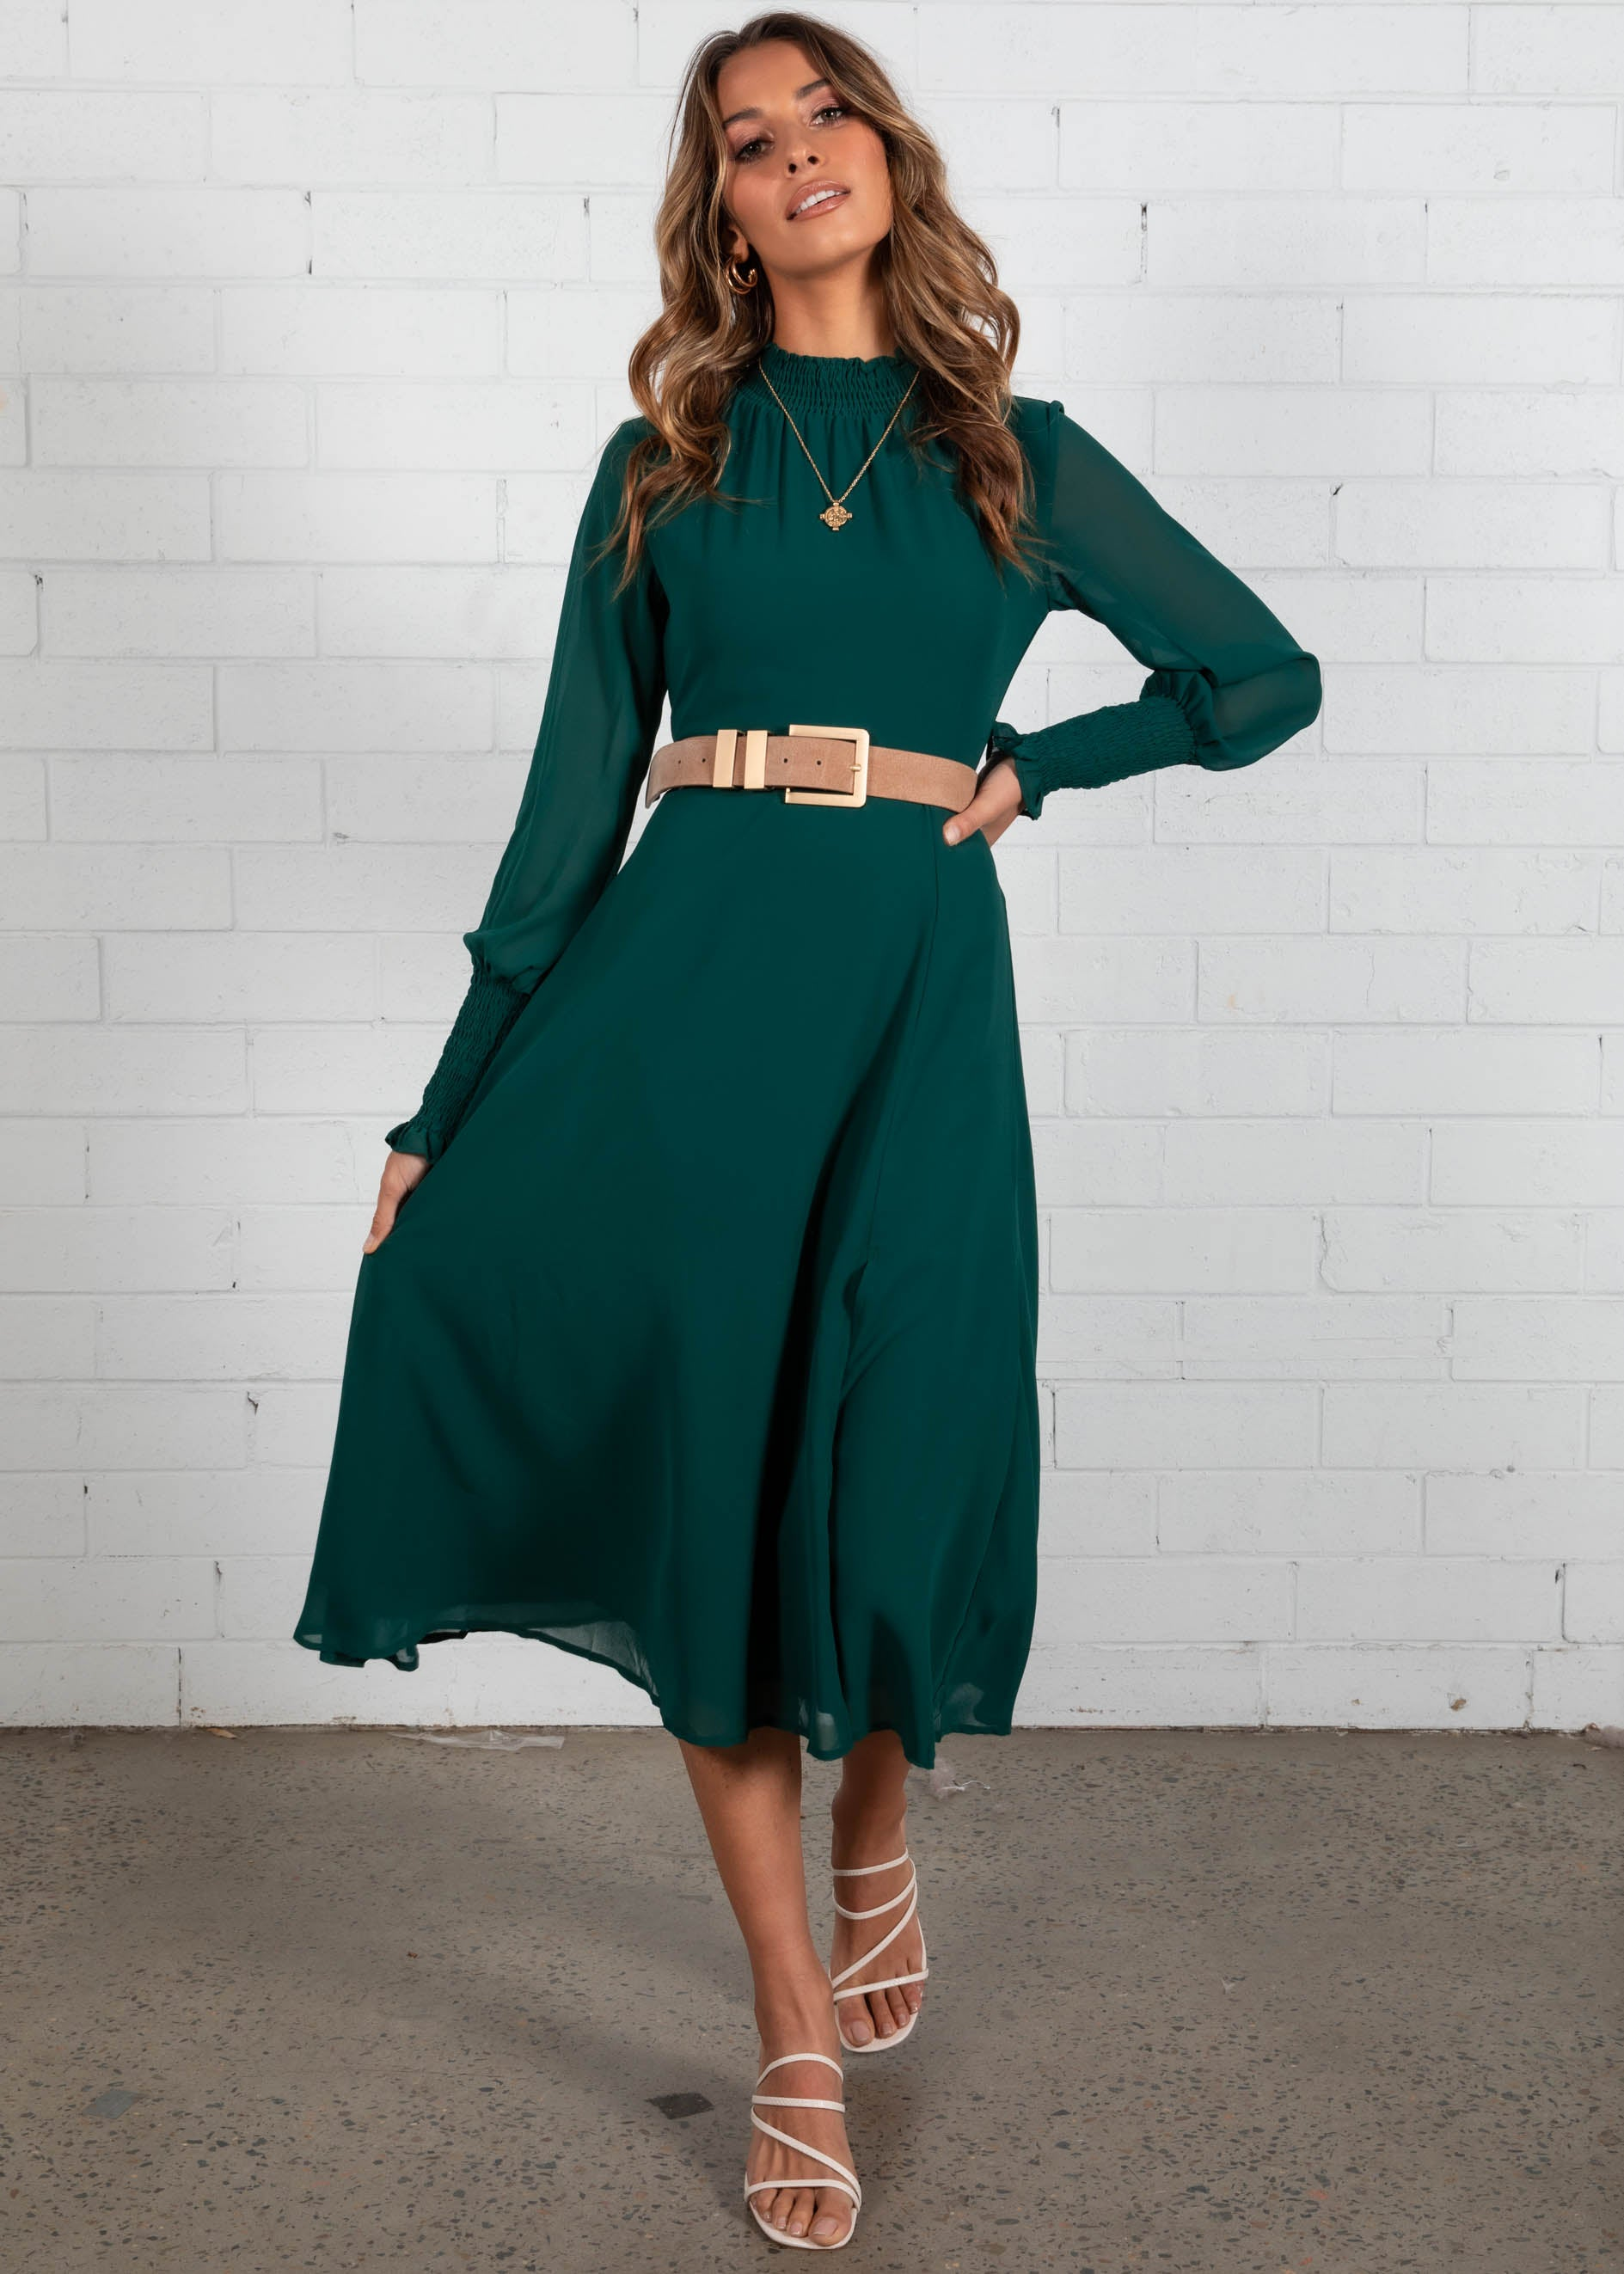 Lost Days Midi Dress - Emerald